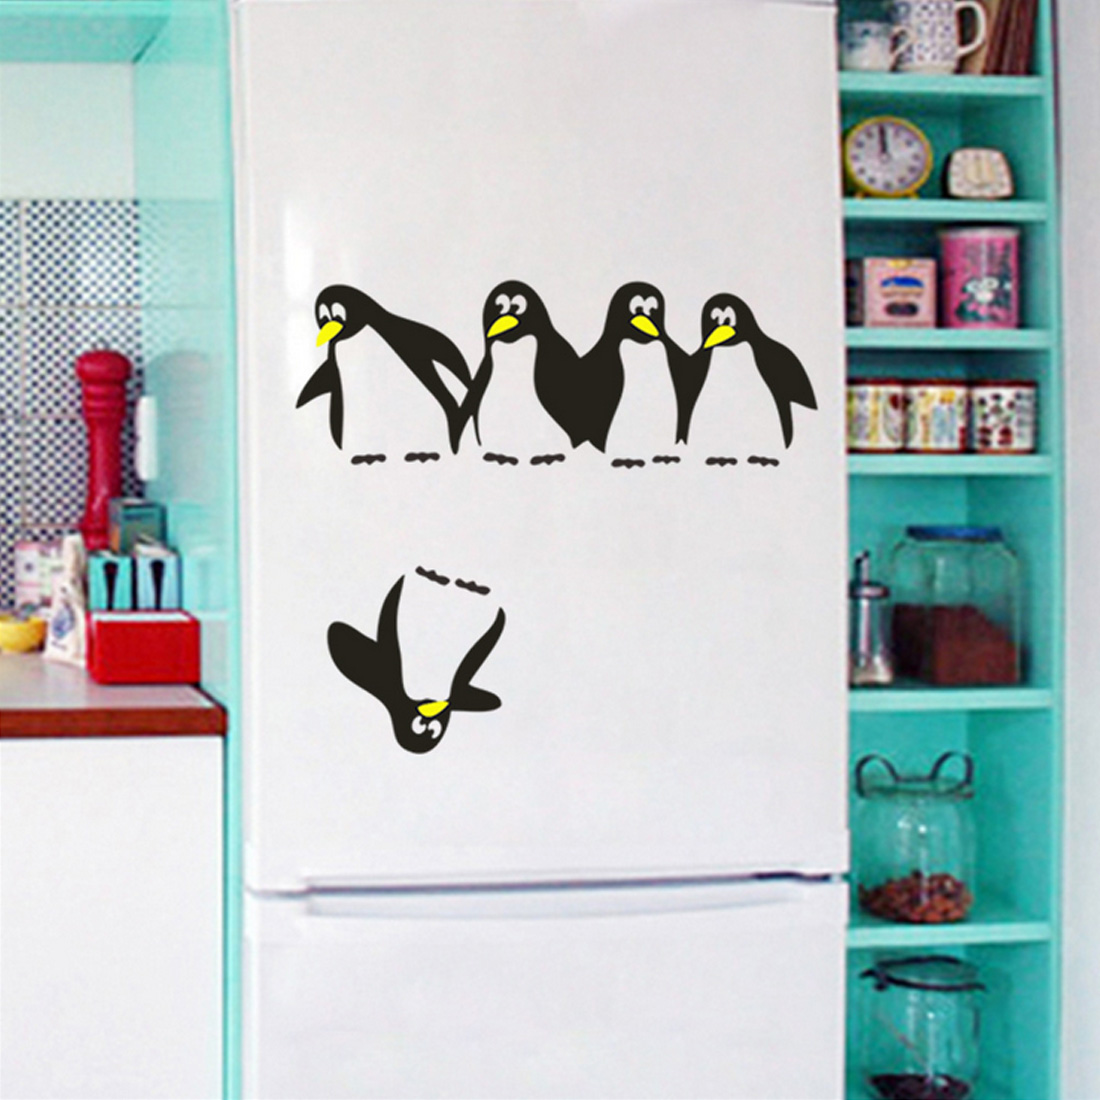 Cute Penguin Funny Kitchen Fridge Sticker 1PC DIY Decals Dining Room Kitchen Decorative Wall Stickers Home